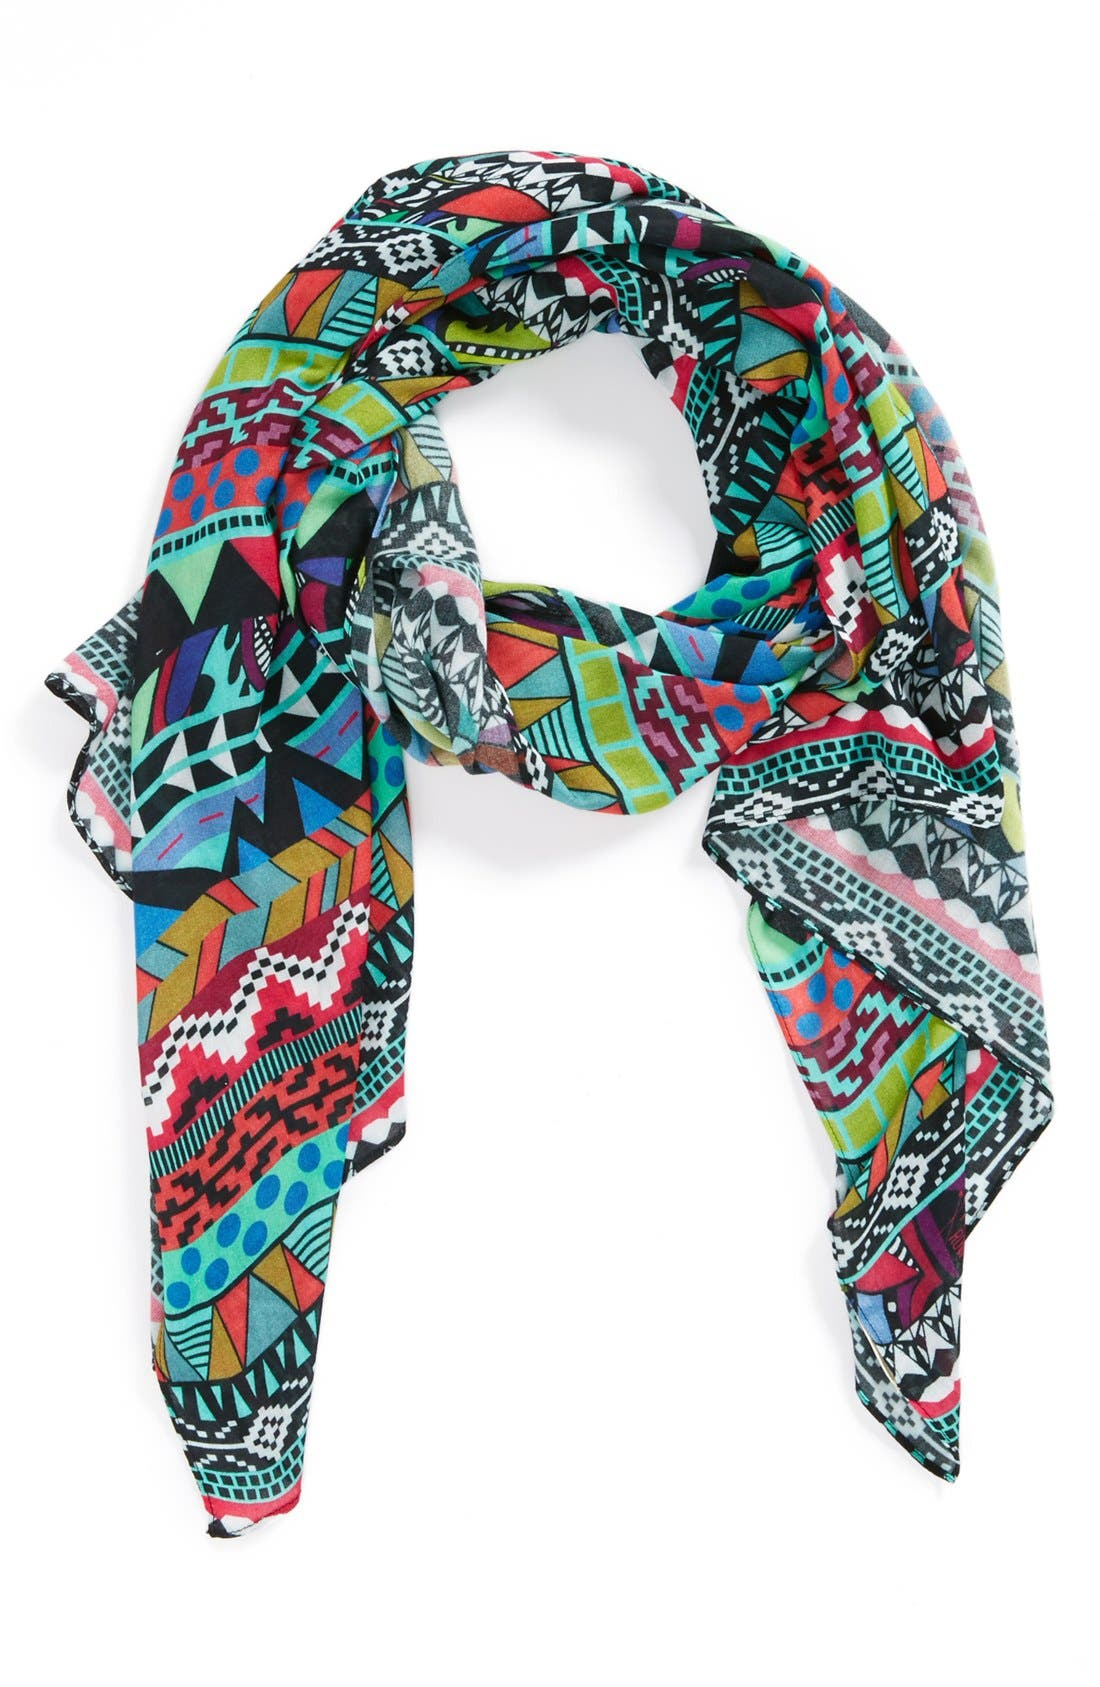 Alternate Image 1 Selected - Front Row Society 'Boho Ikat' Print Scarf